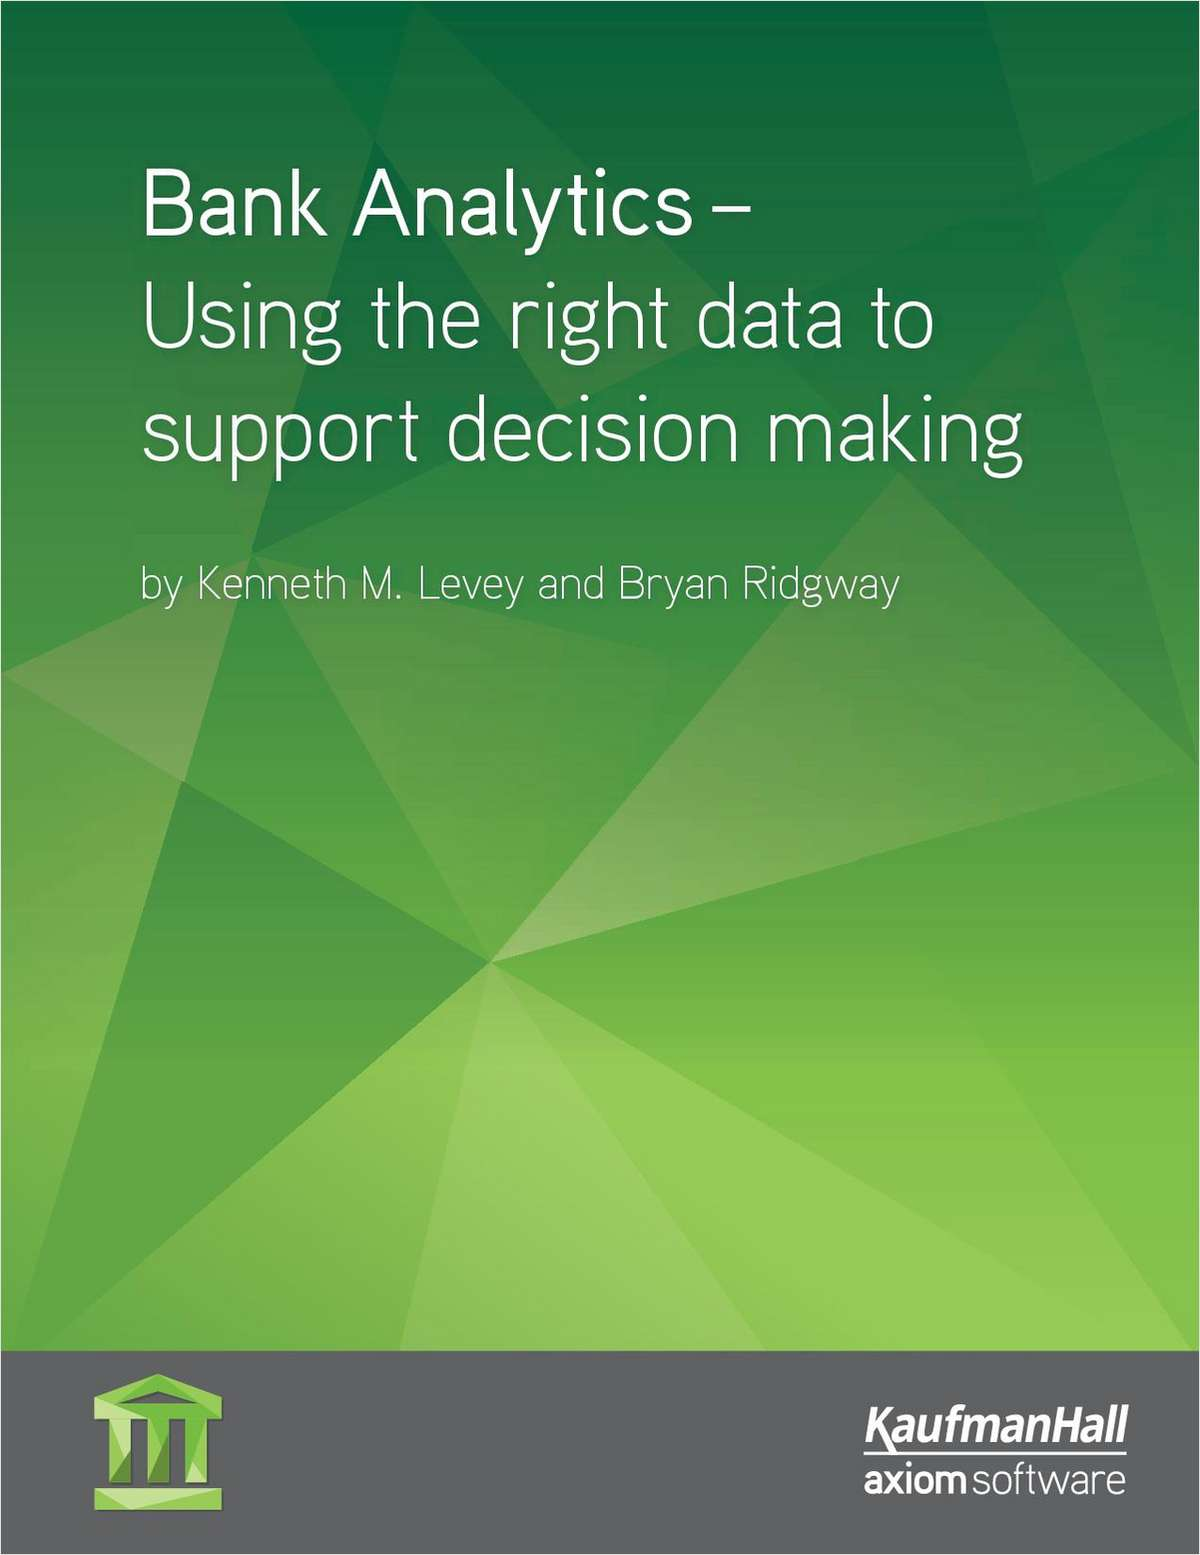 Credit Union Analytics - Using the Right Data to Support Decision Making